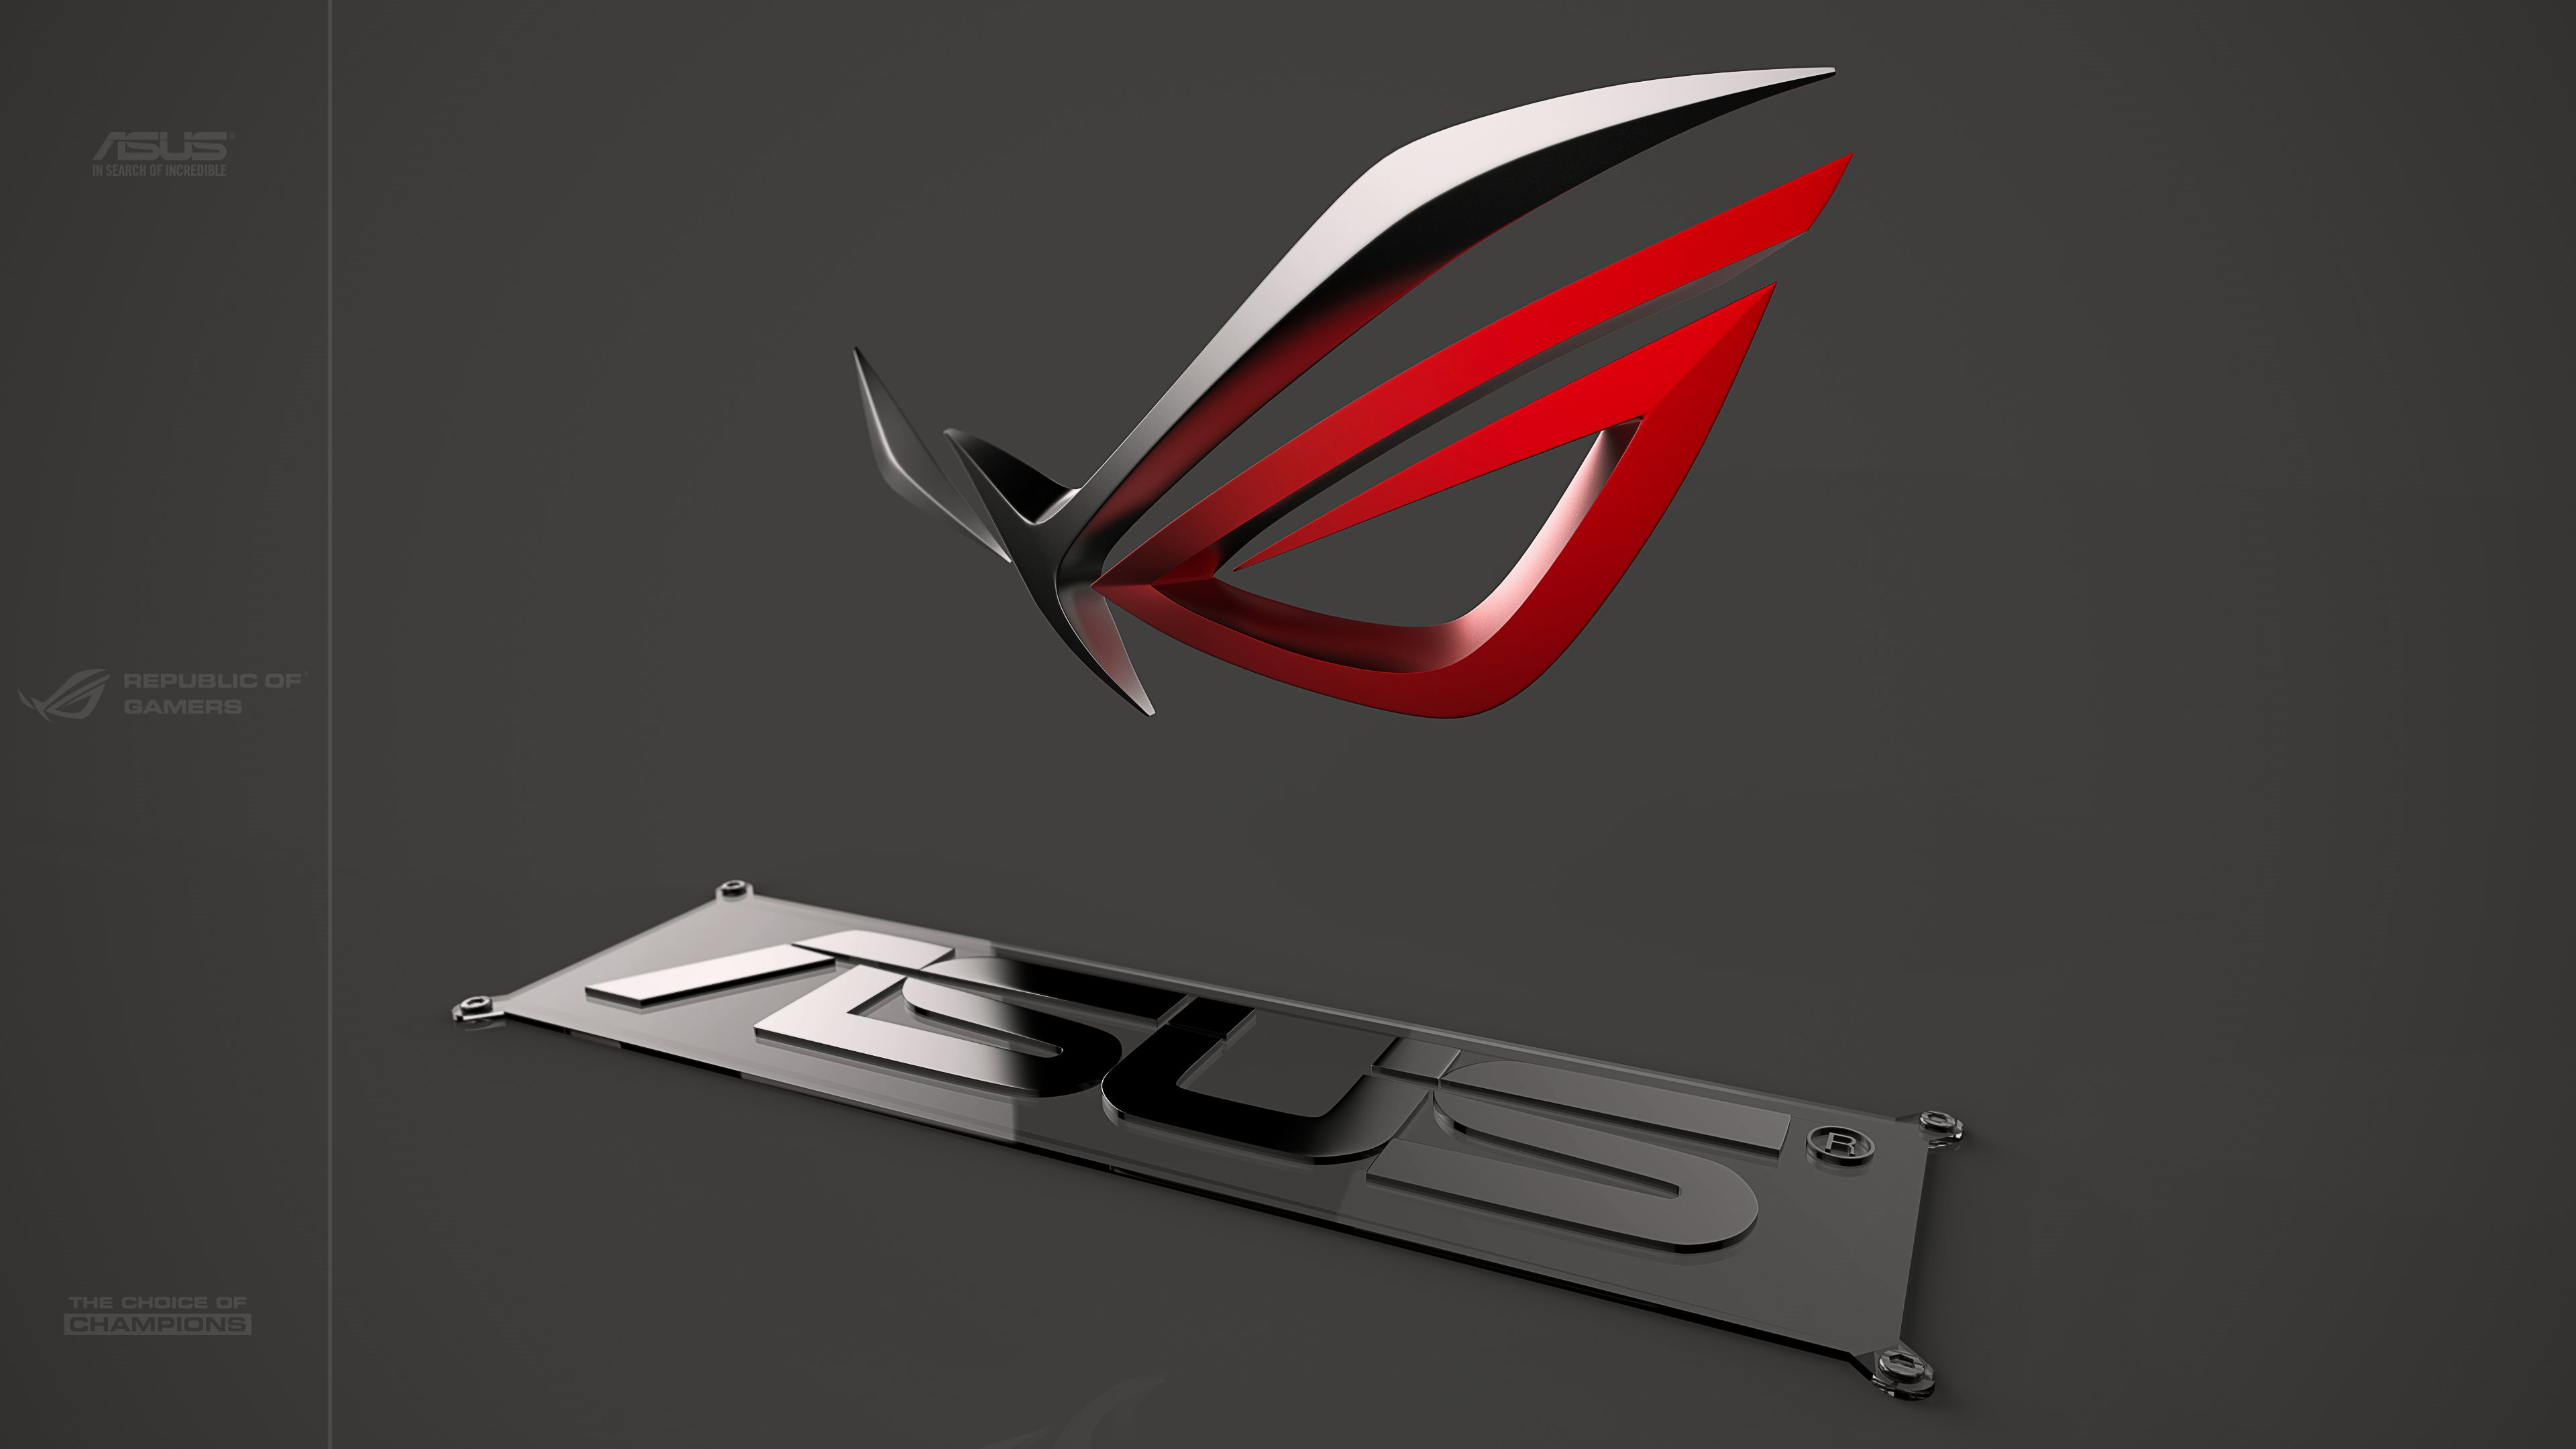 Asus pb287q monitor 2014 4k uhd wallpaper competition page 64 - Asus Republic Of Gamers Uhd Wallpapers Ultra High Definition